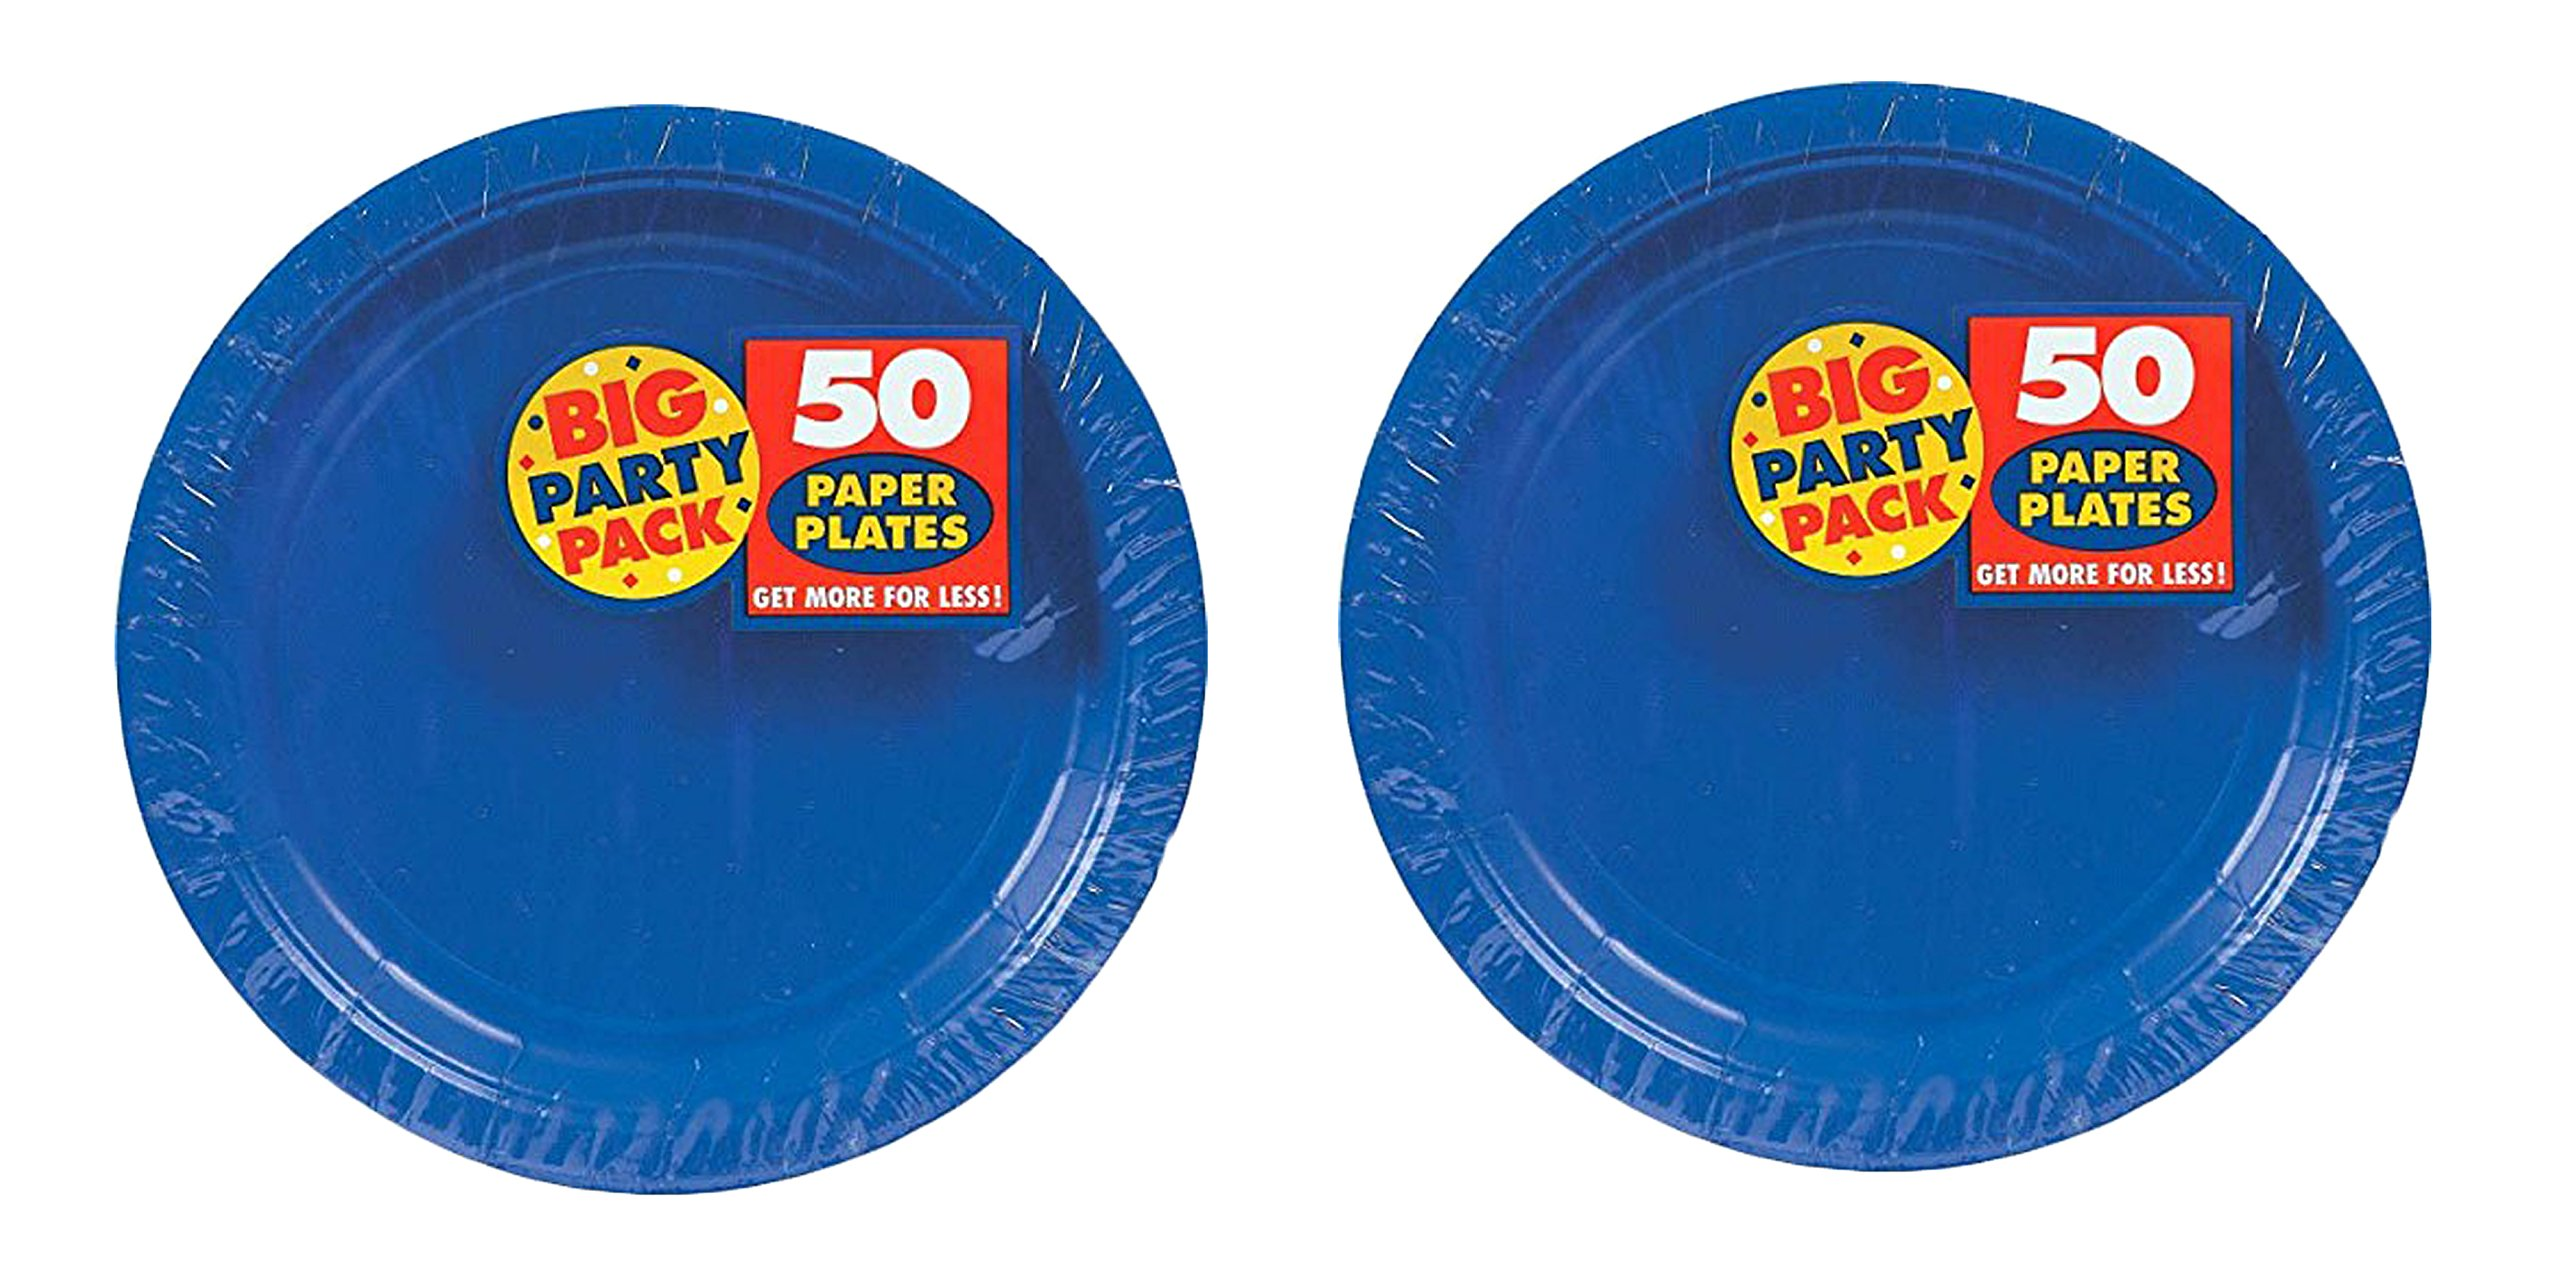 Maven Gifts Big Party Pack Paper Dinner Plates 9-Inch 50/Pkg Bright Royal Blue 2 pack